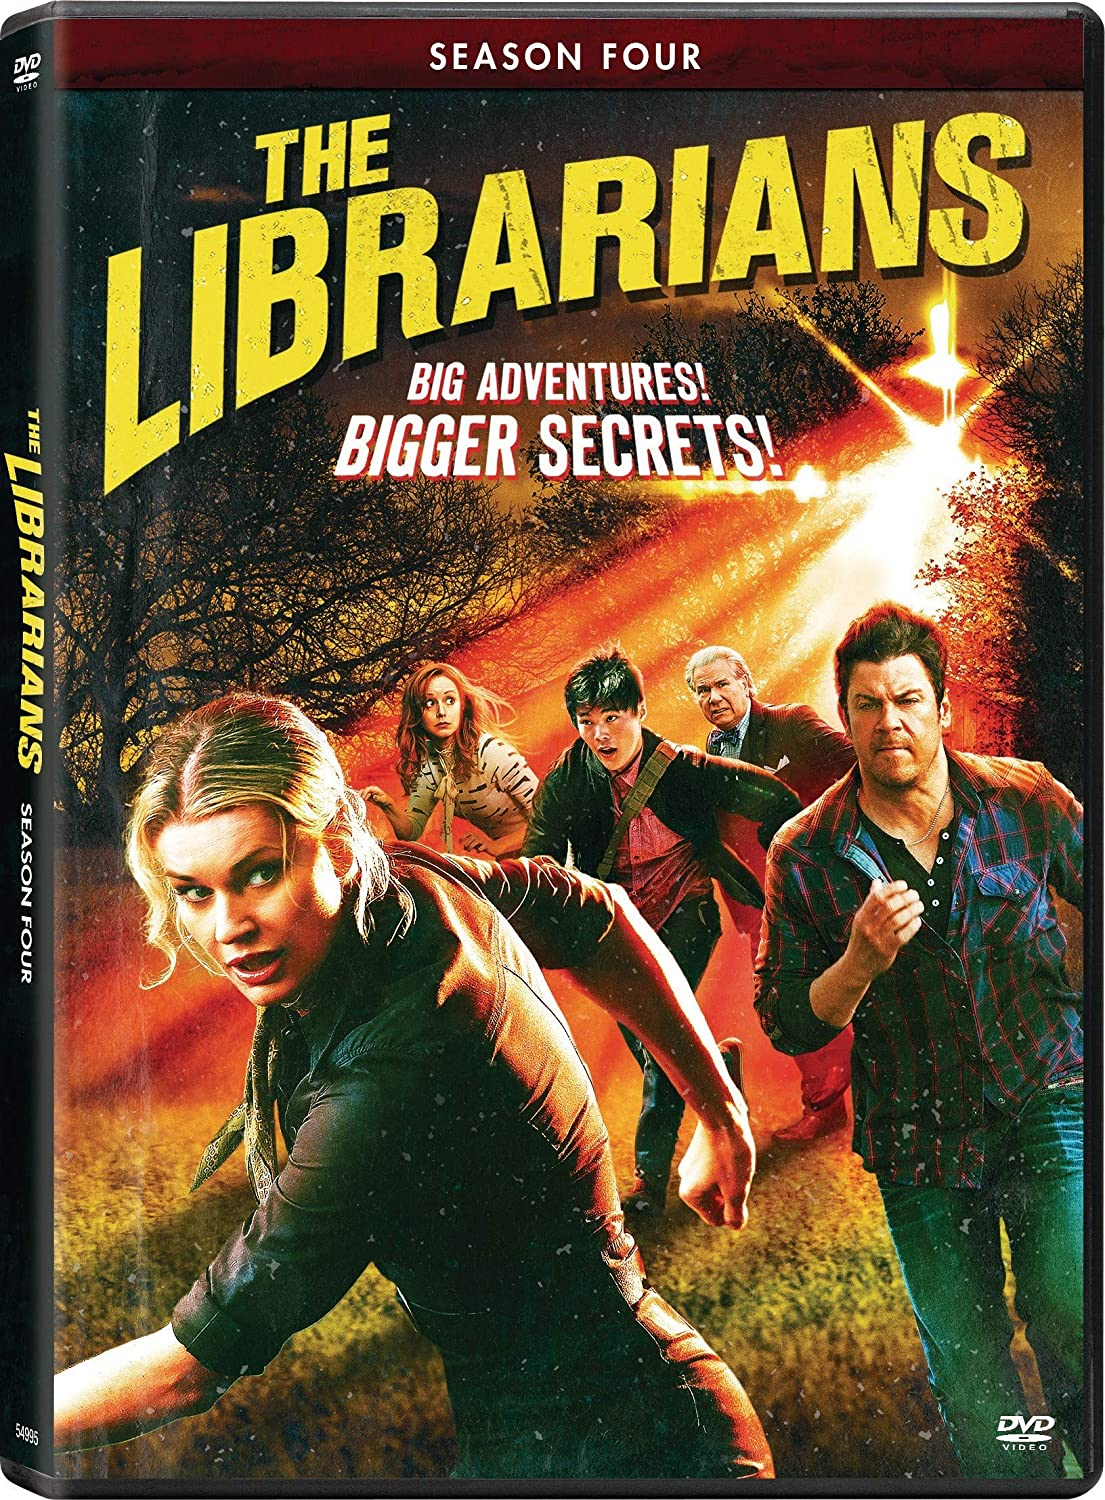 The Librarians - Season 04 (Sous-titres français) Christian Kane Lindy Booth Rebecca Romijn Geoffrey Thorne